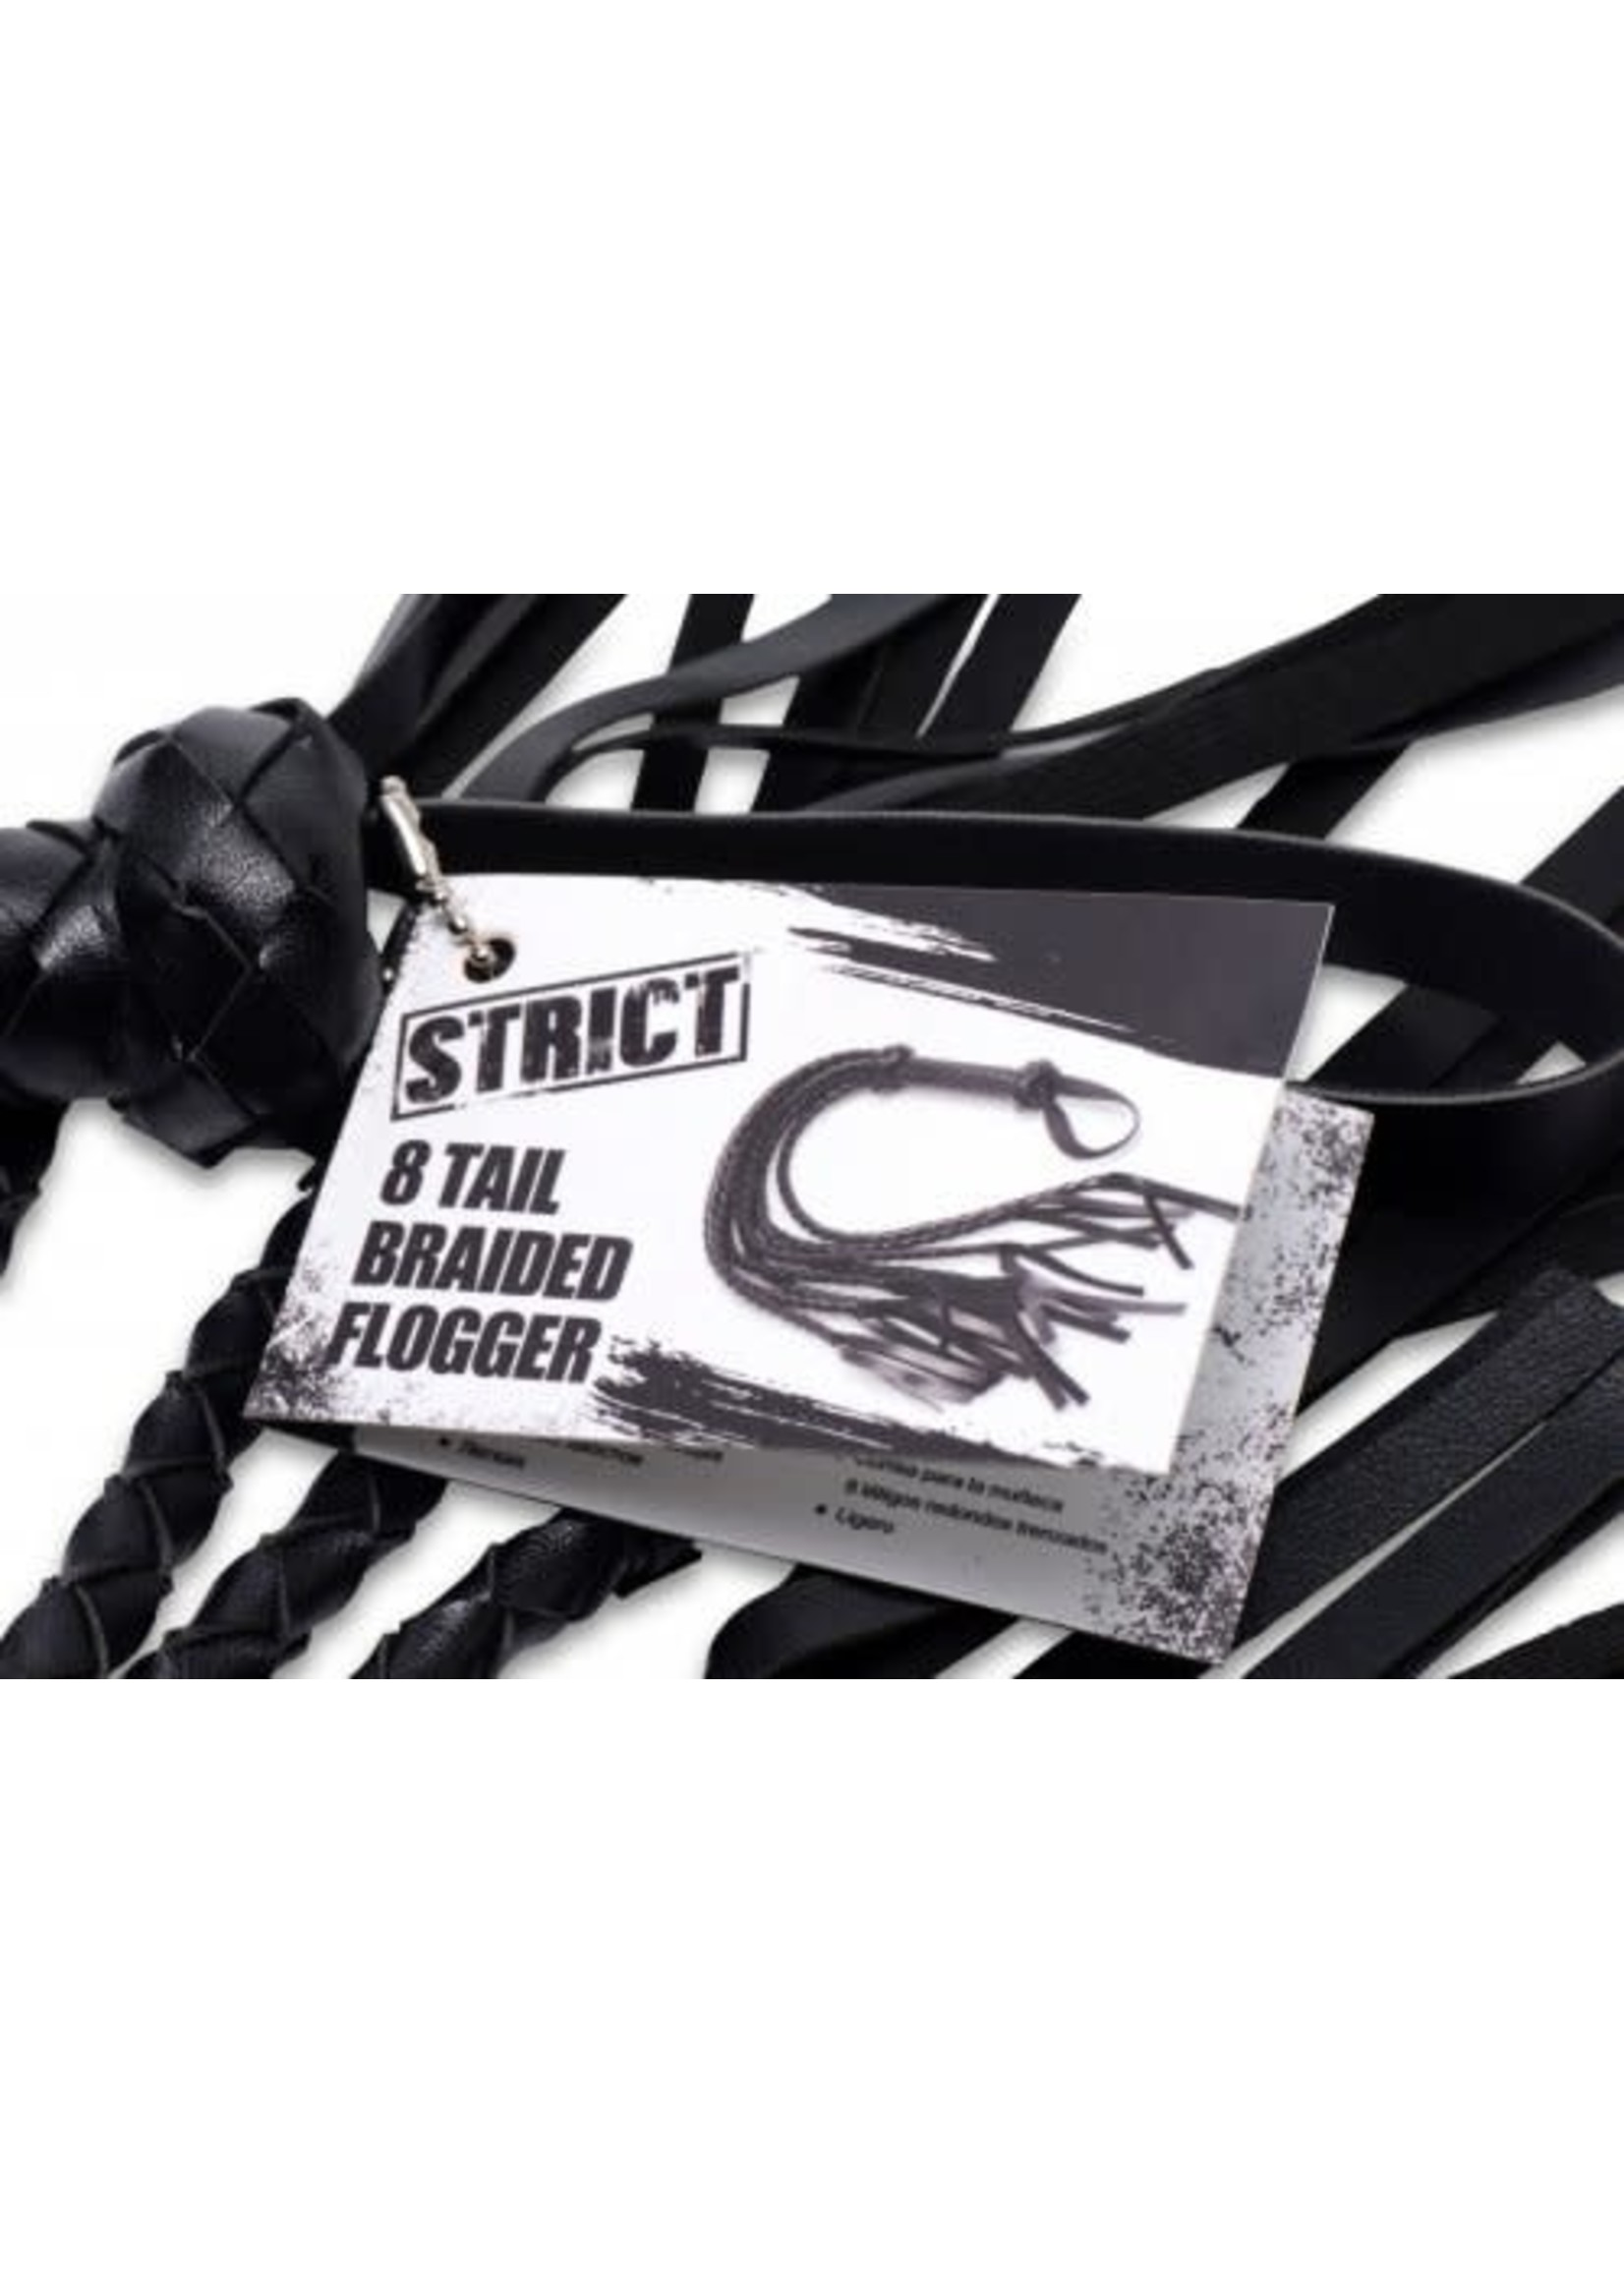 XR Brands 8 Tail Braided Flogger